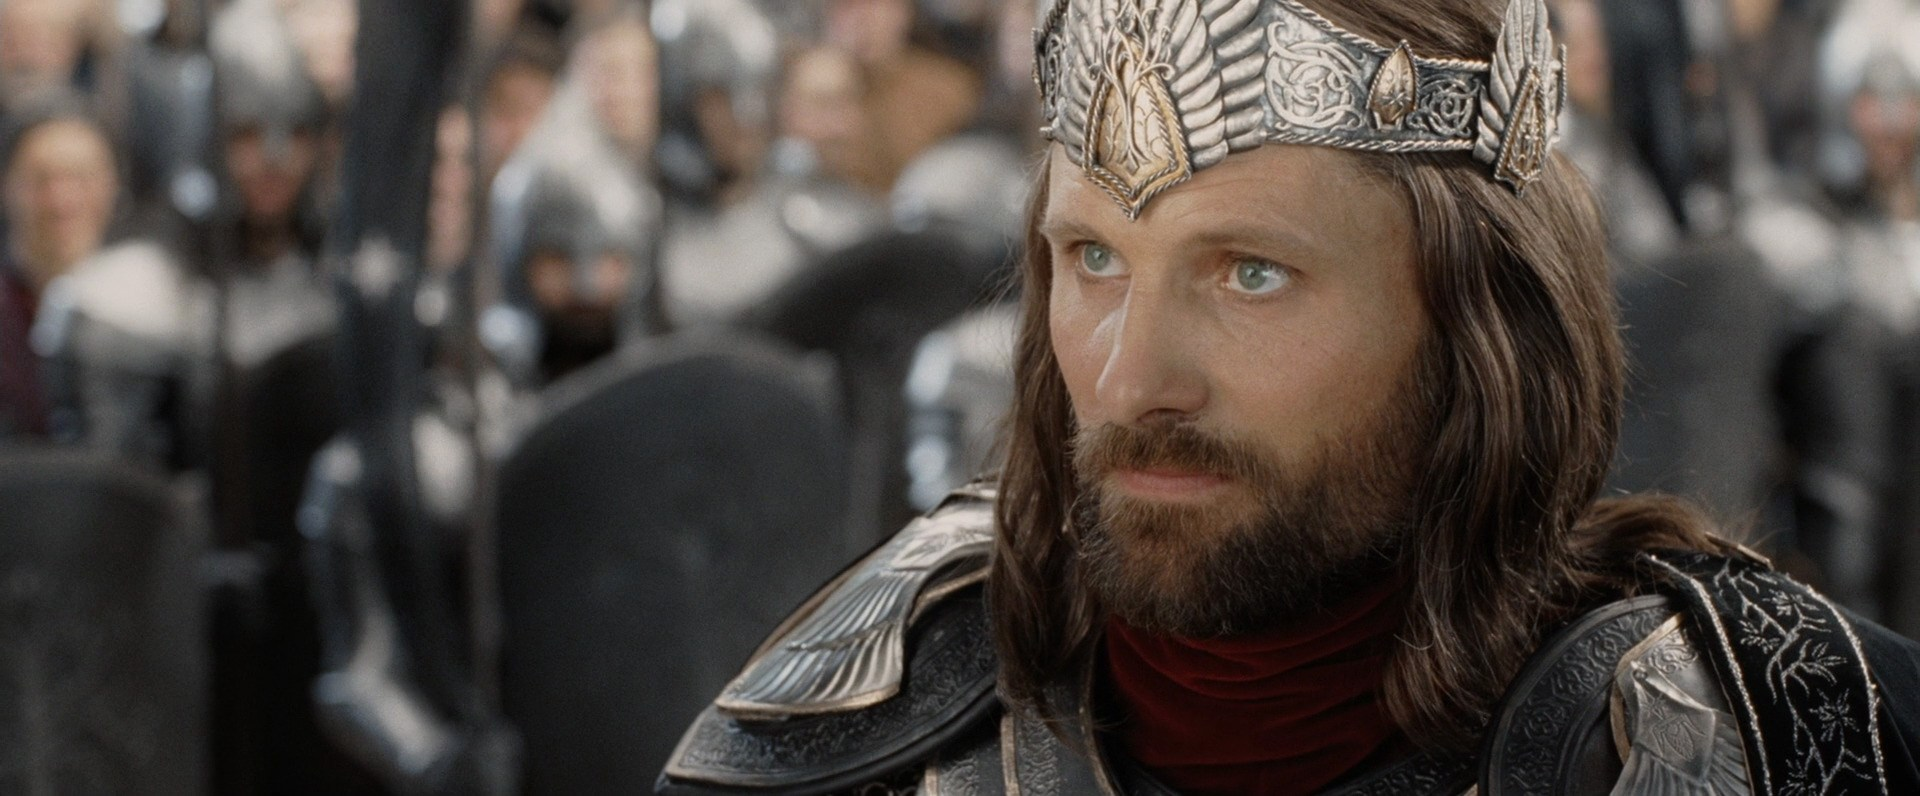 Aragorn from Lord of the Rings looks up, wearing a crown. His hair looks soft and he is well-groomed: it's his coronation.